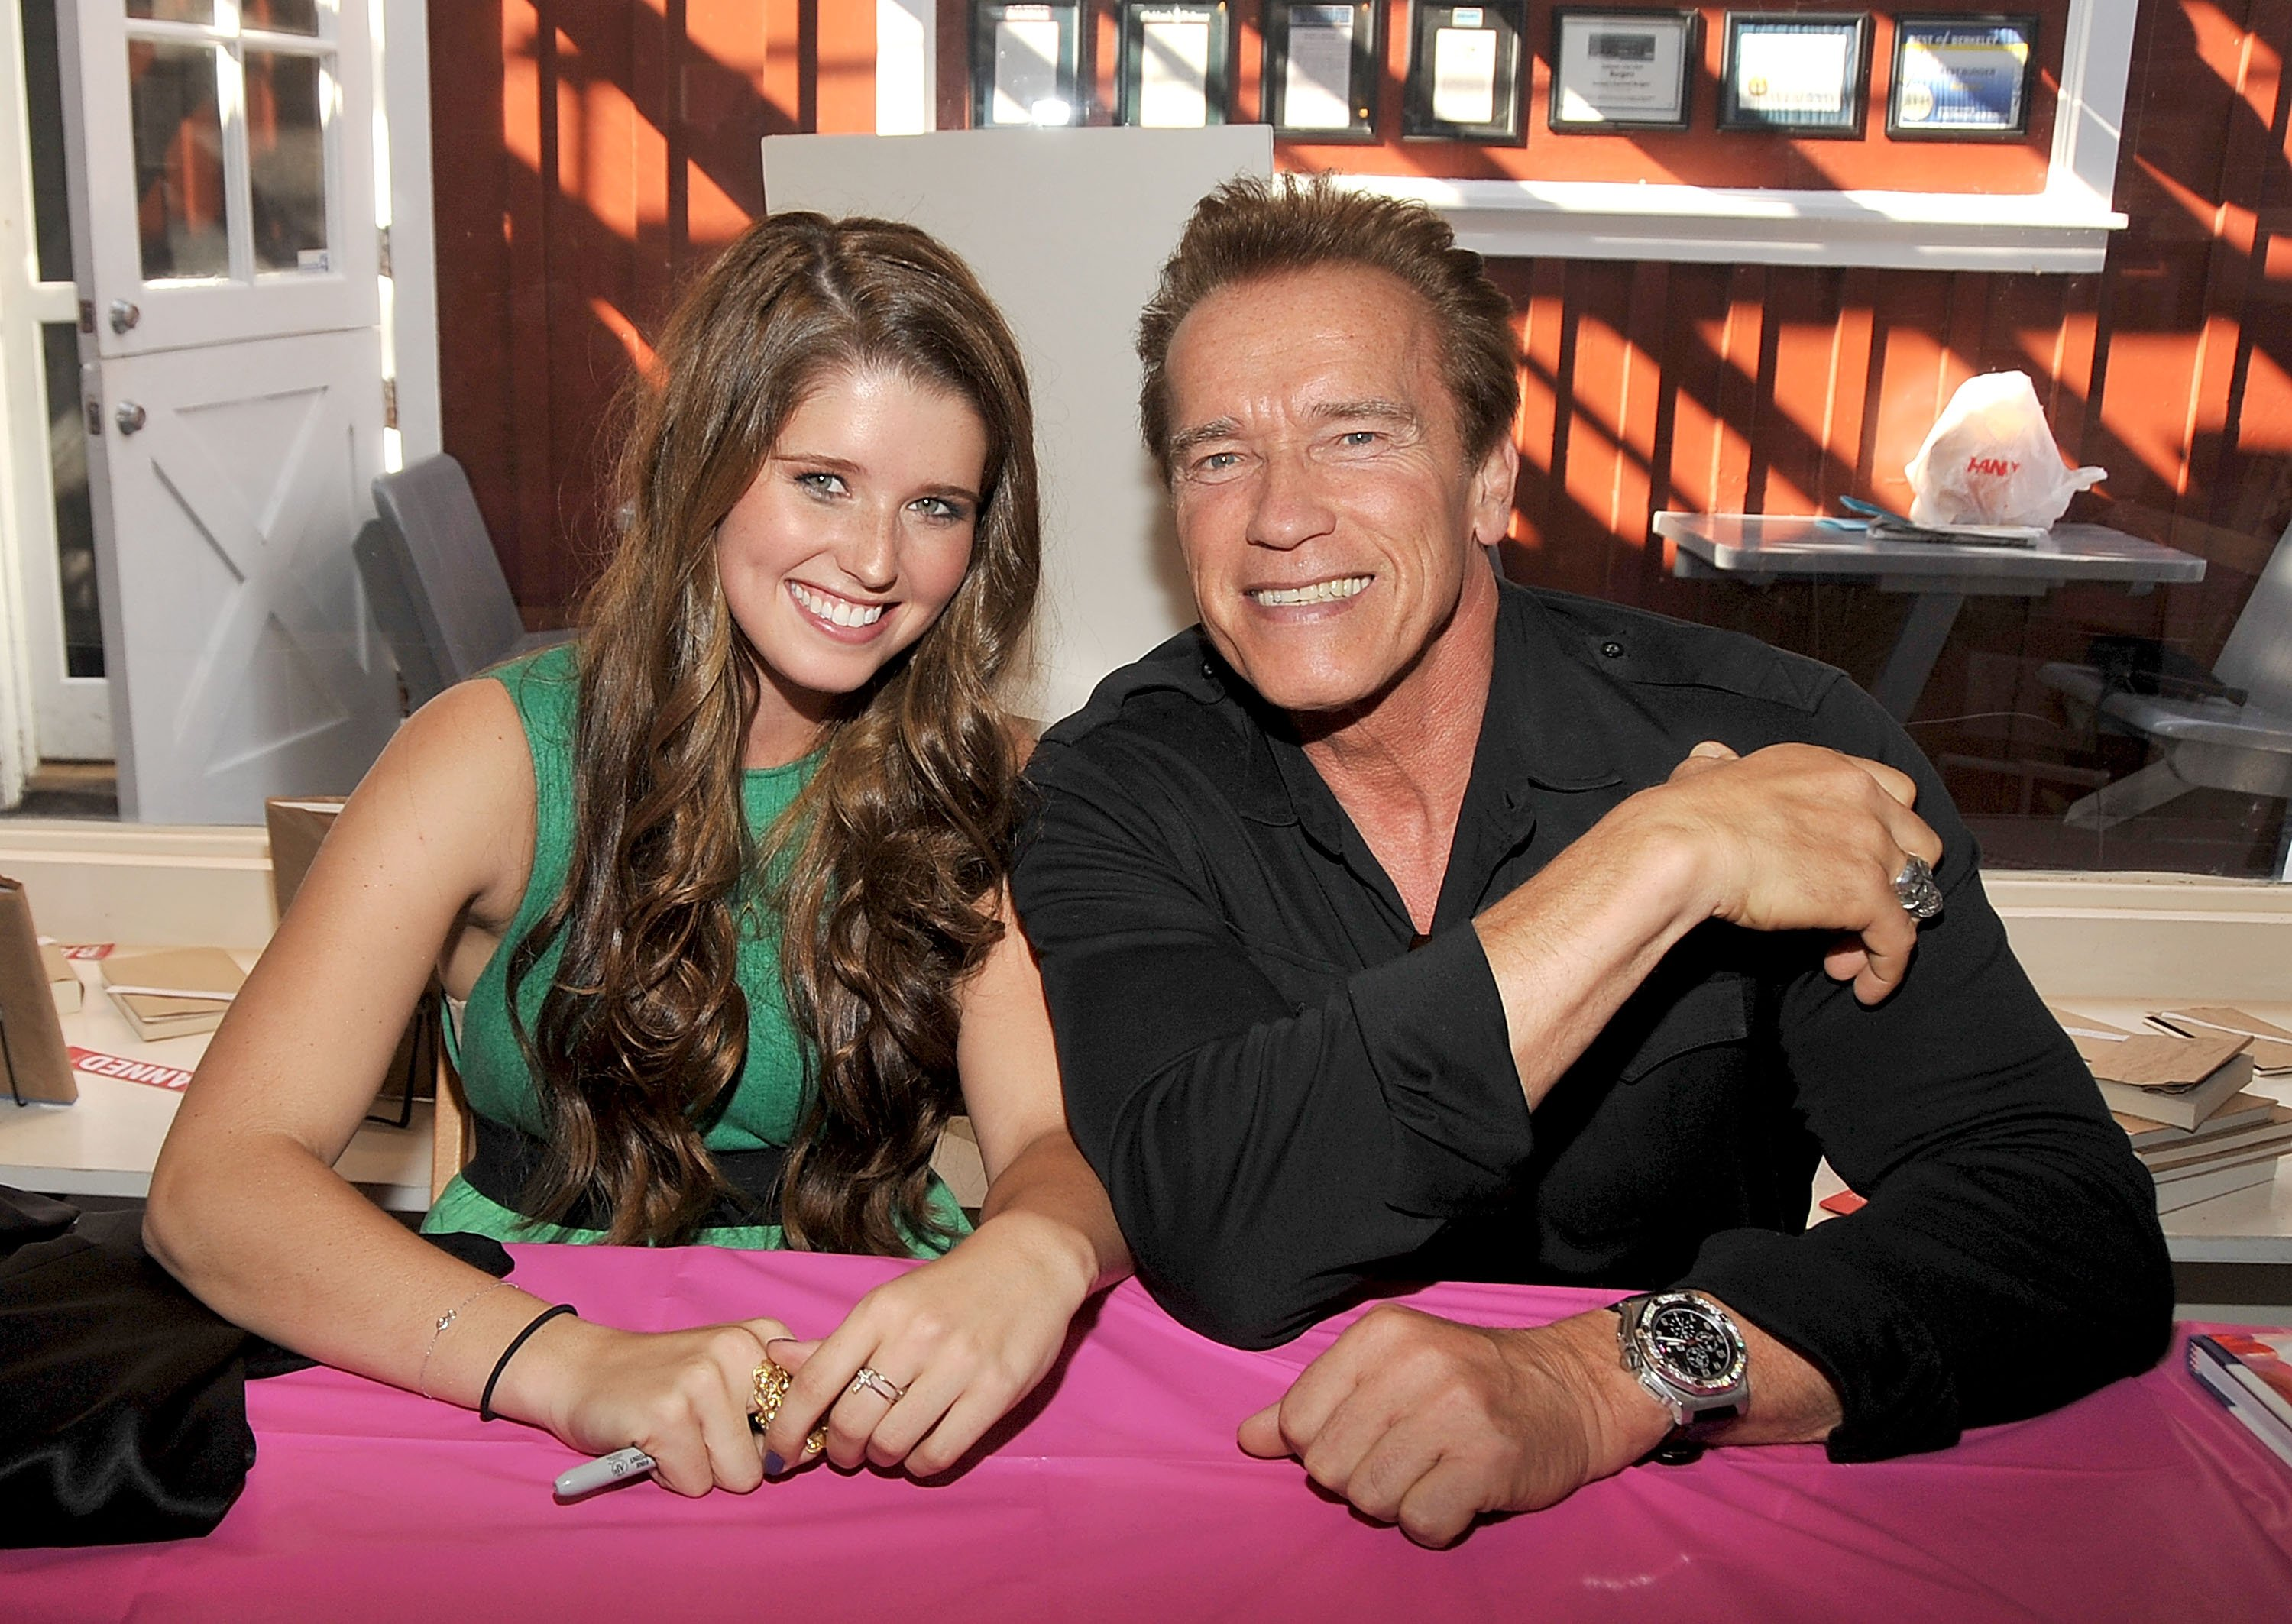 Katherine Schwarzenegger and father Arnold Schwarzenegger attend Katherine's book signing in Brentwood, California on October 2, 2010 | Photo: Getty Images